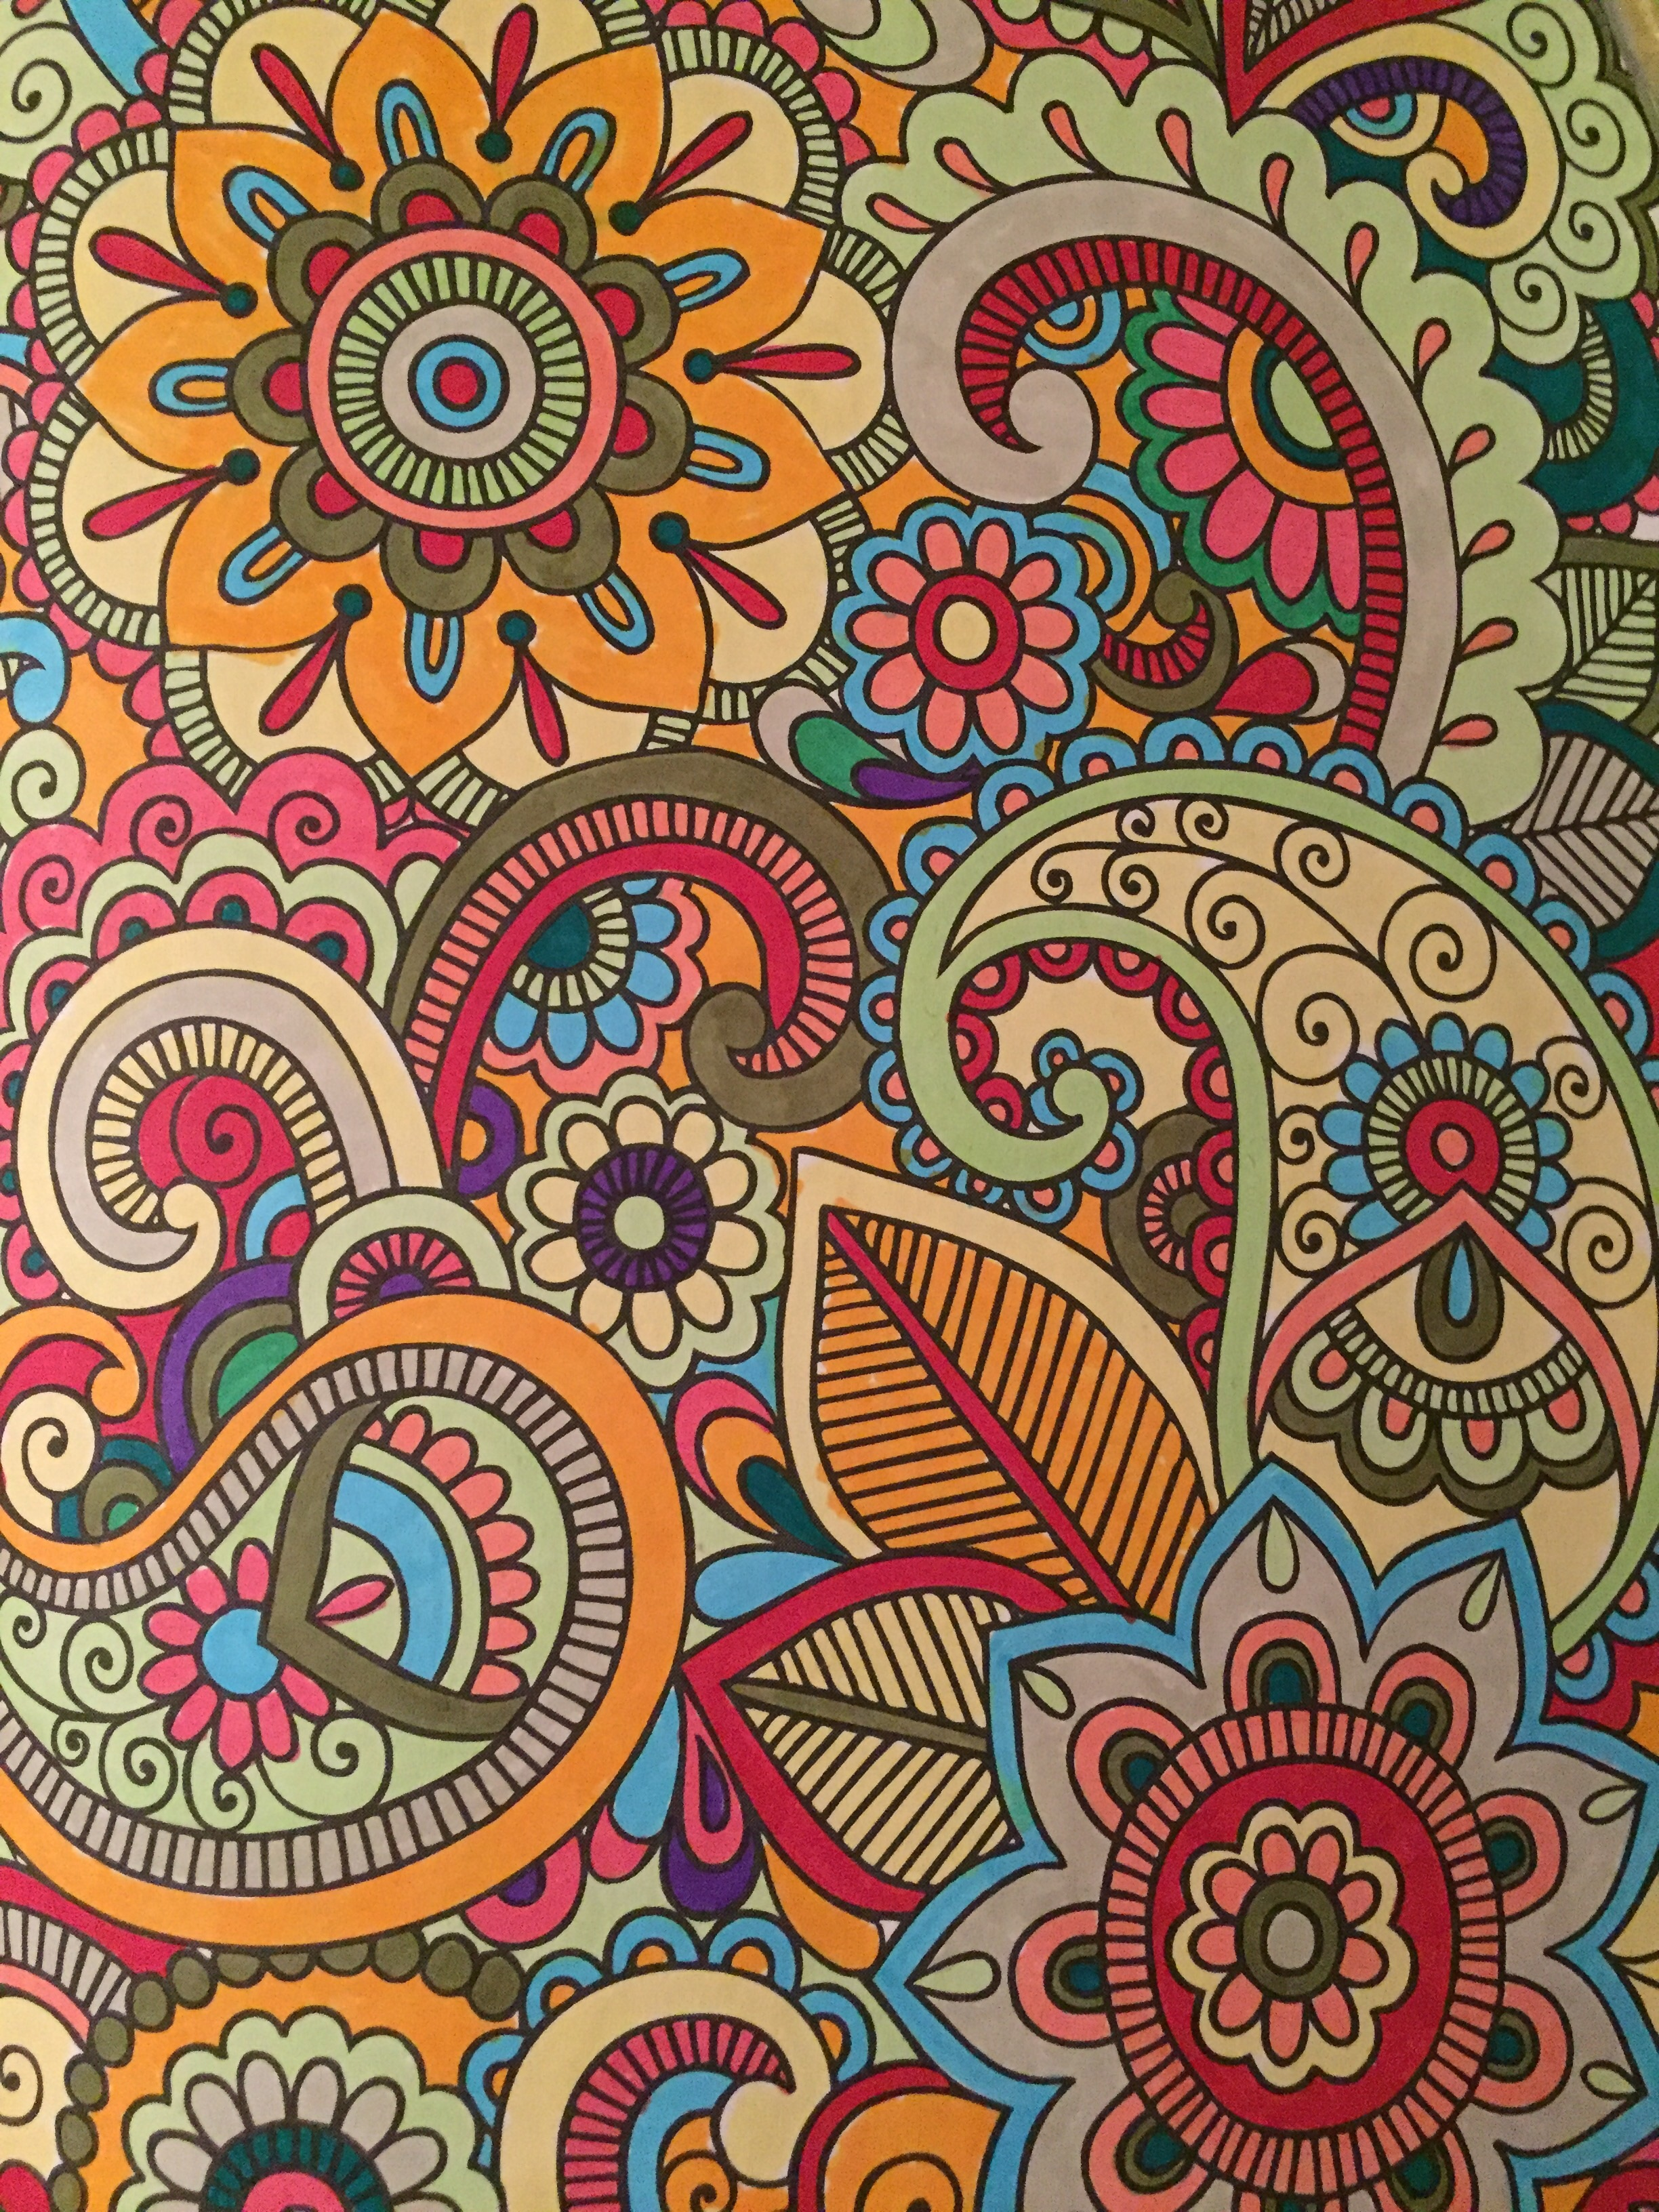 Vibrant results with Stabilo Pens.